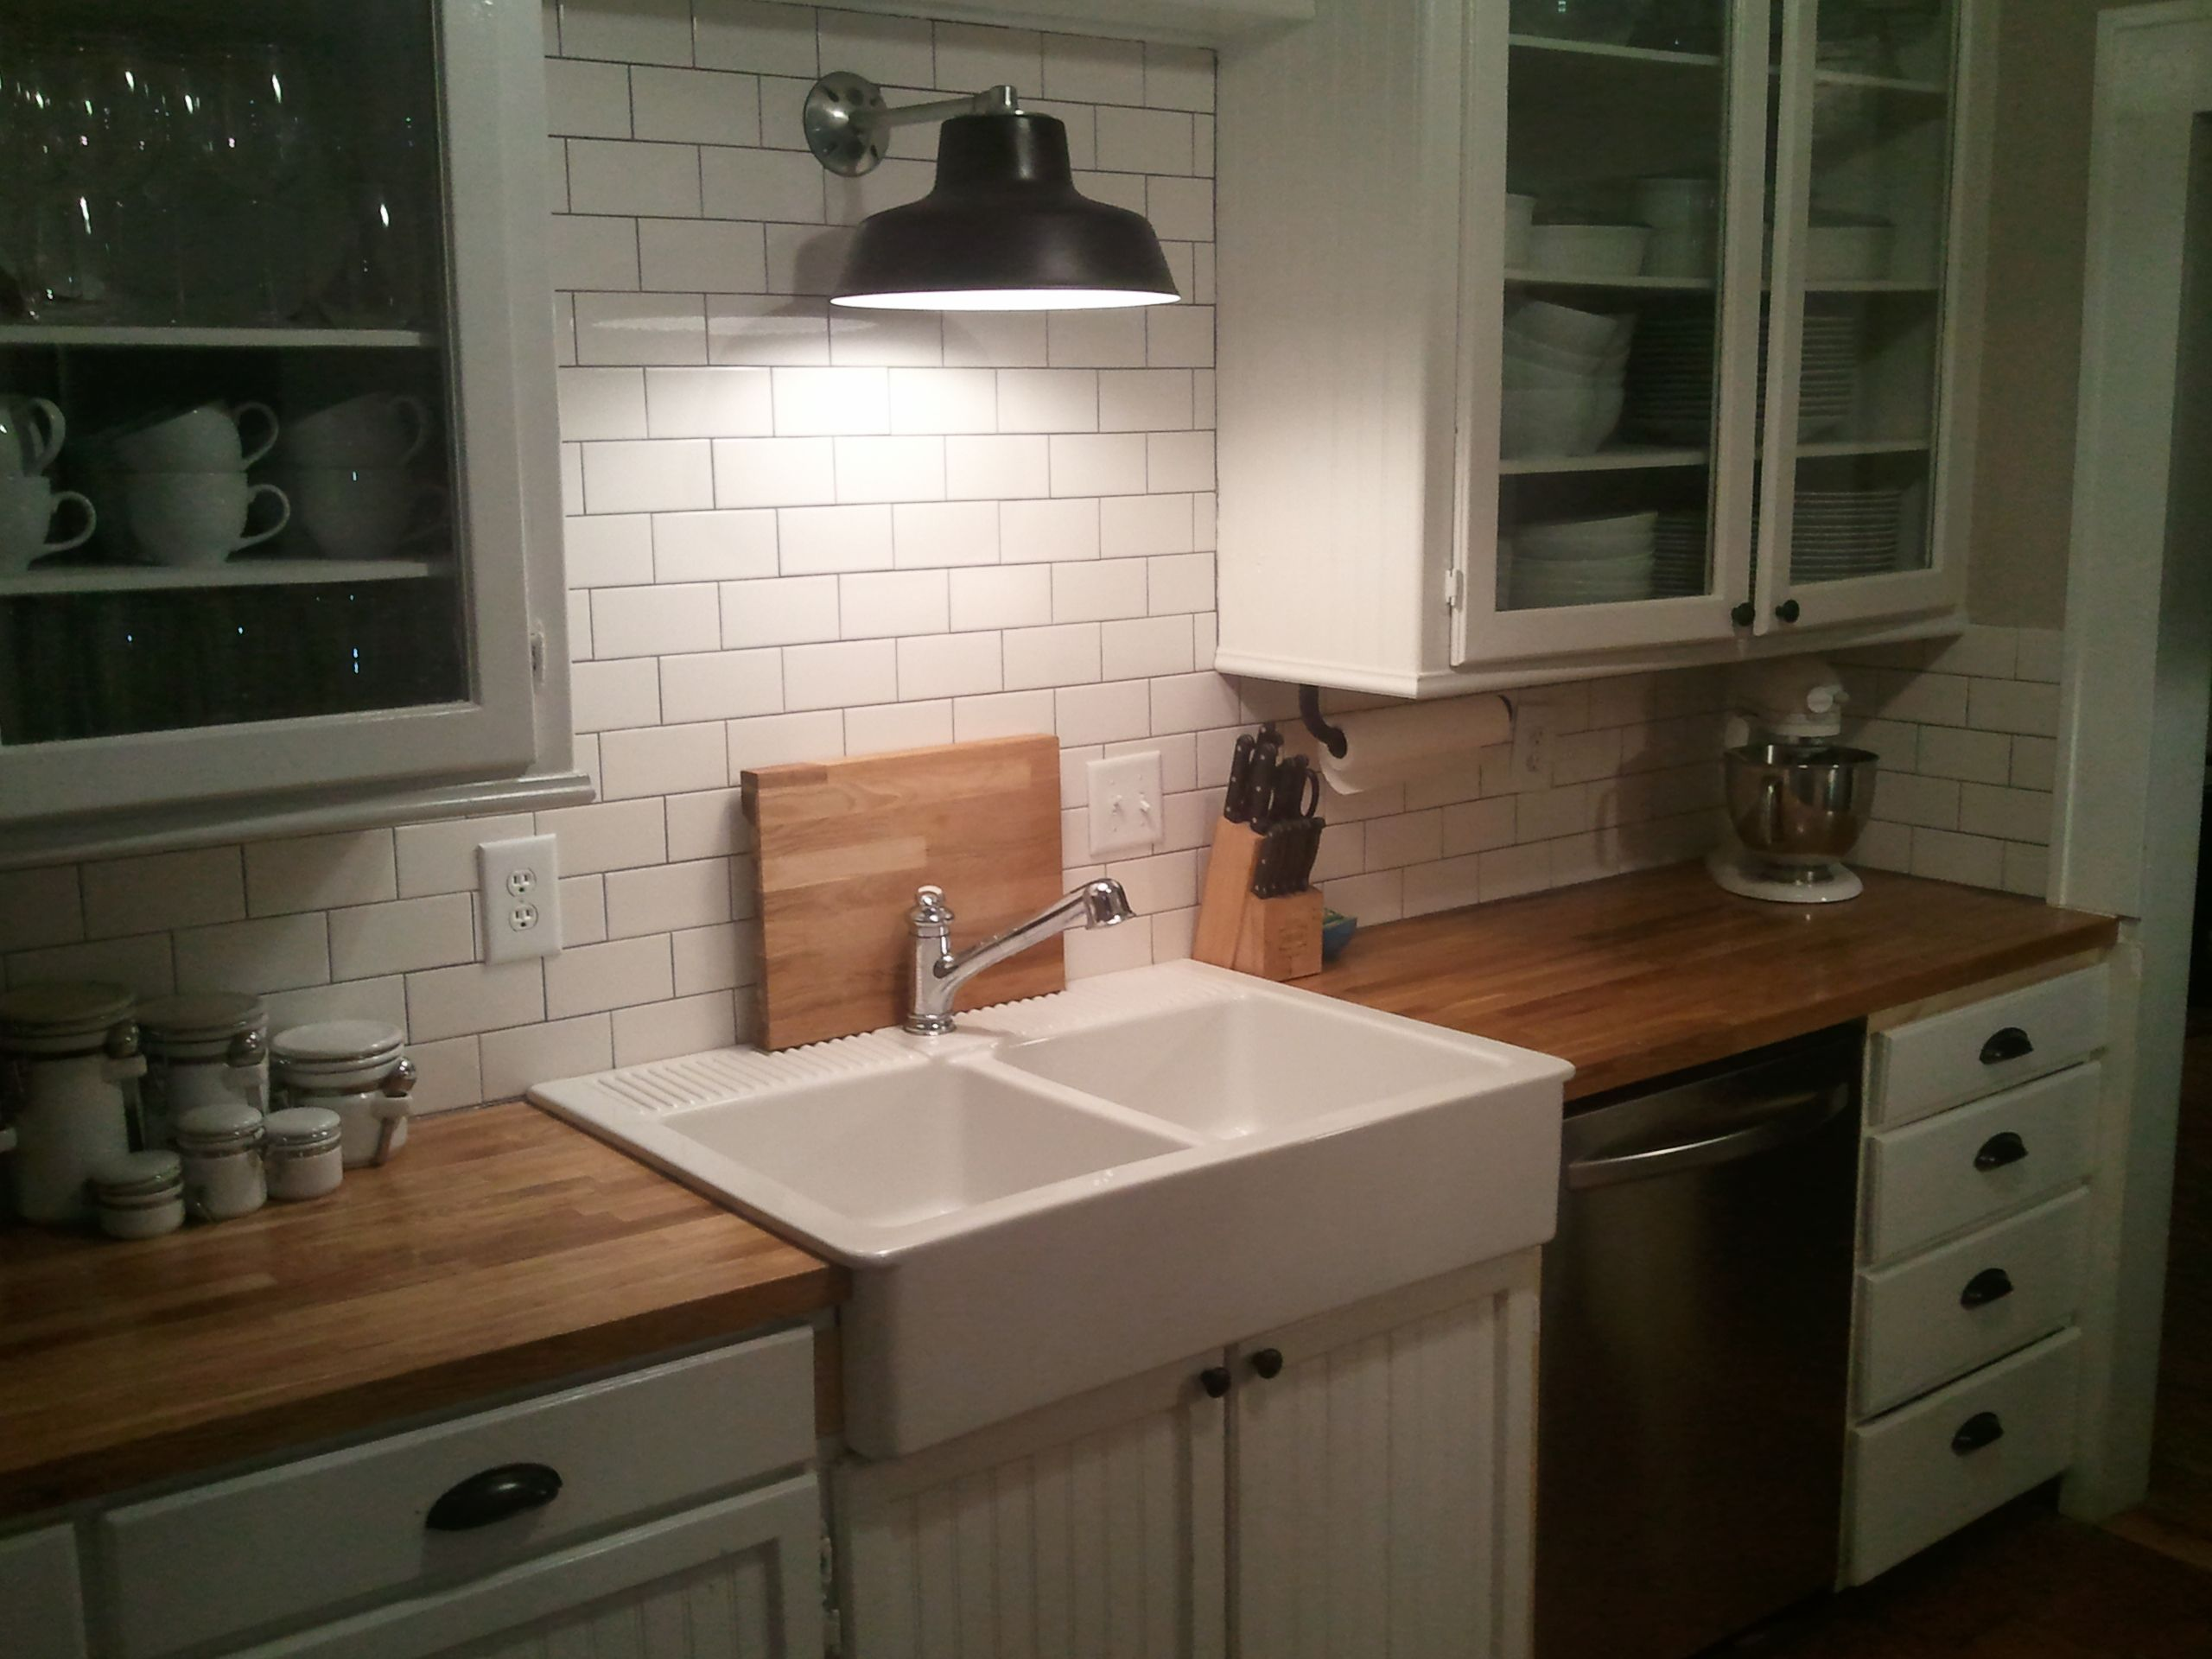 Our Small Kitchen DIY Remodel In North Dakota: IKEA Farmhouse Sink, IKEA Butcher  Block Countertops, LOWES Warehouse Pendant, And HOME DEPOT Subway Tile.